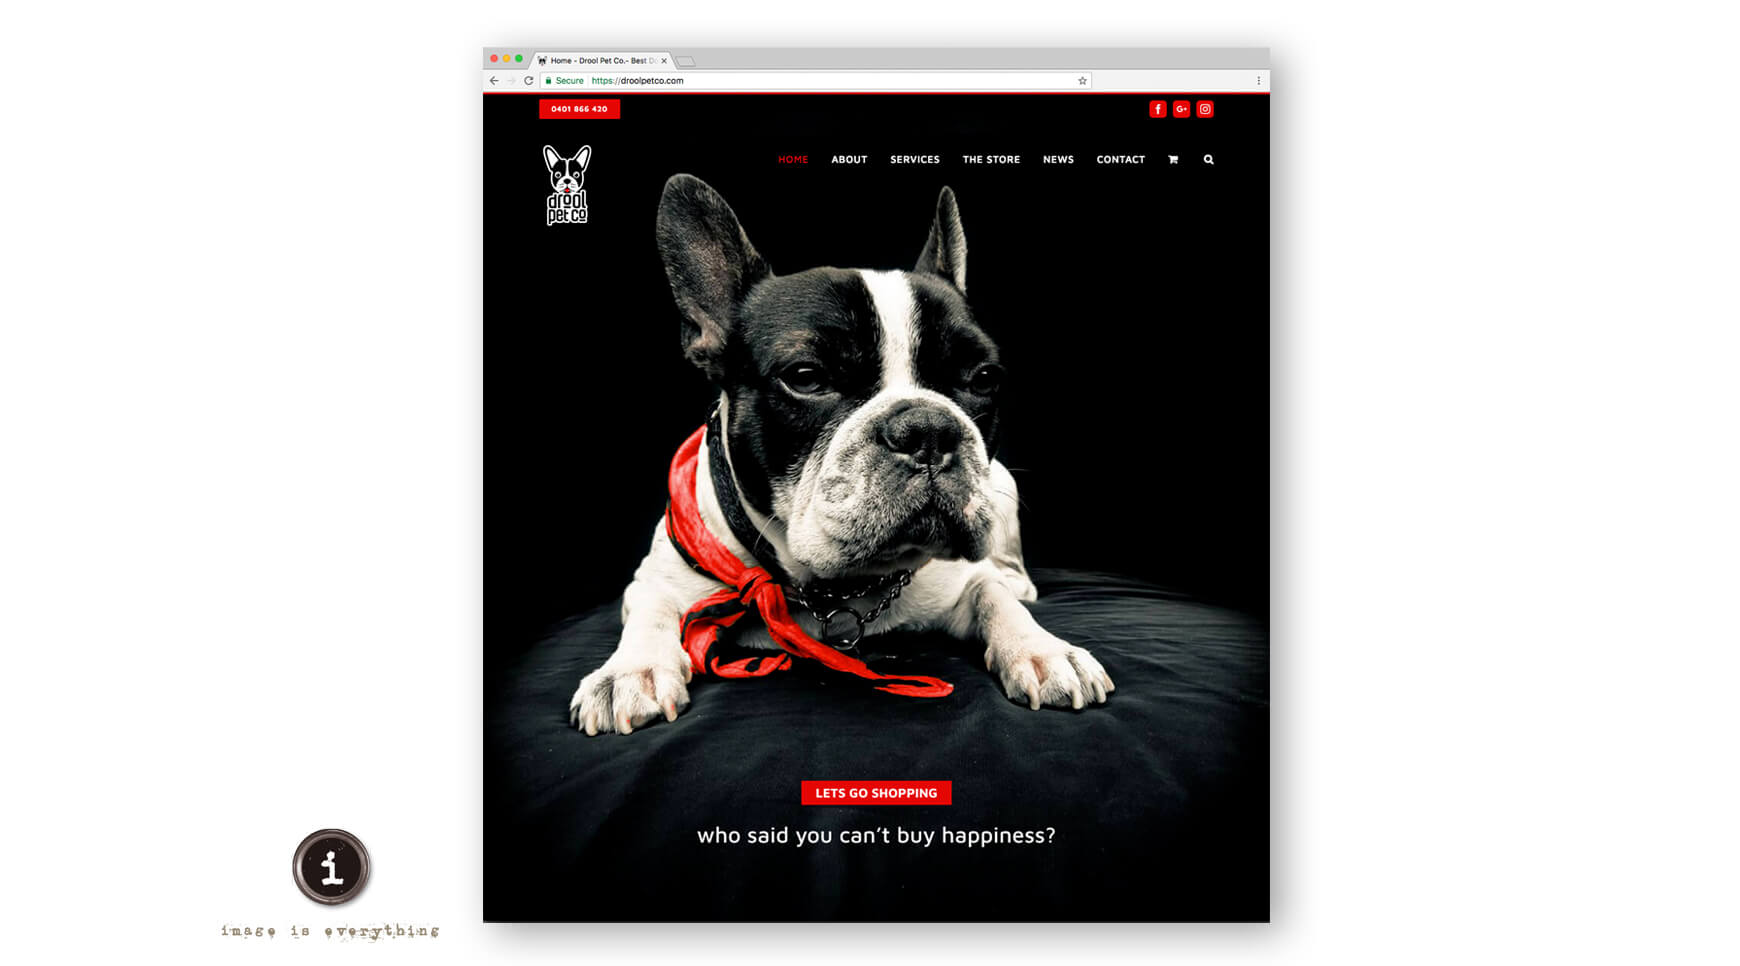 Icon Graphic Design Adelaide - Drool Pet Co. website home page.